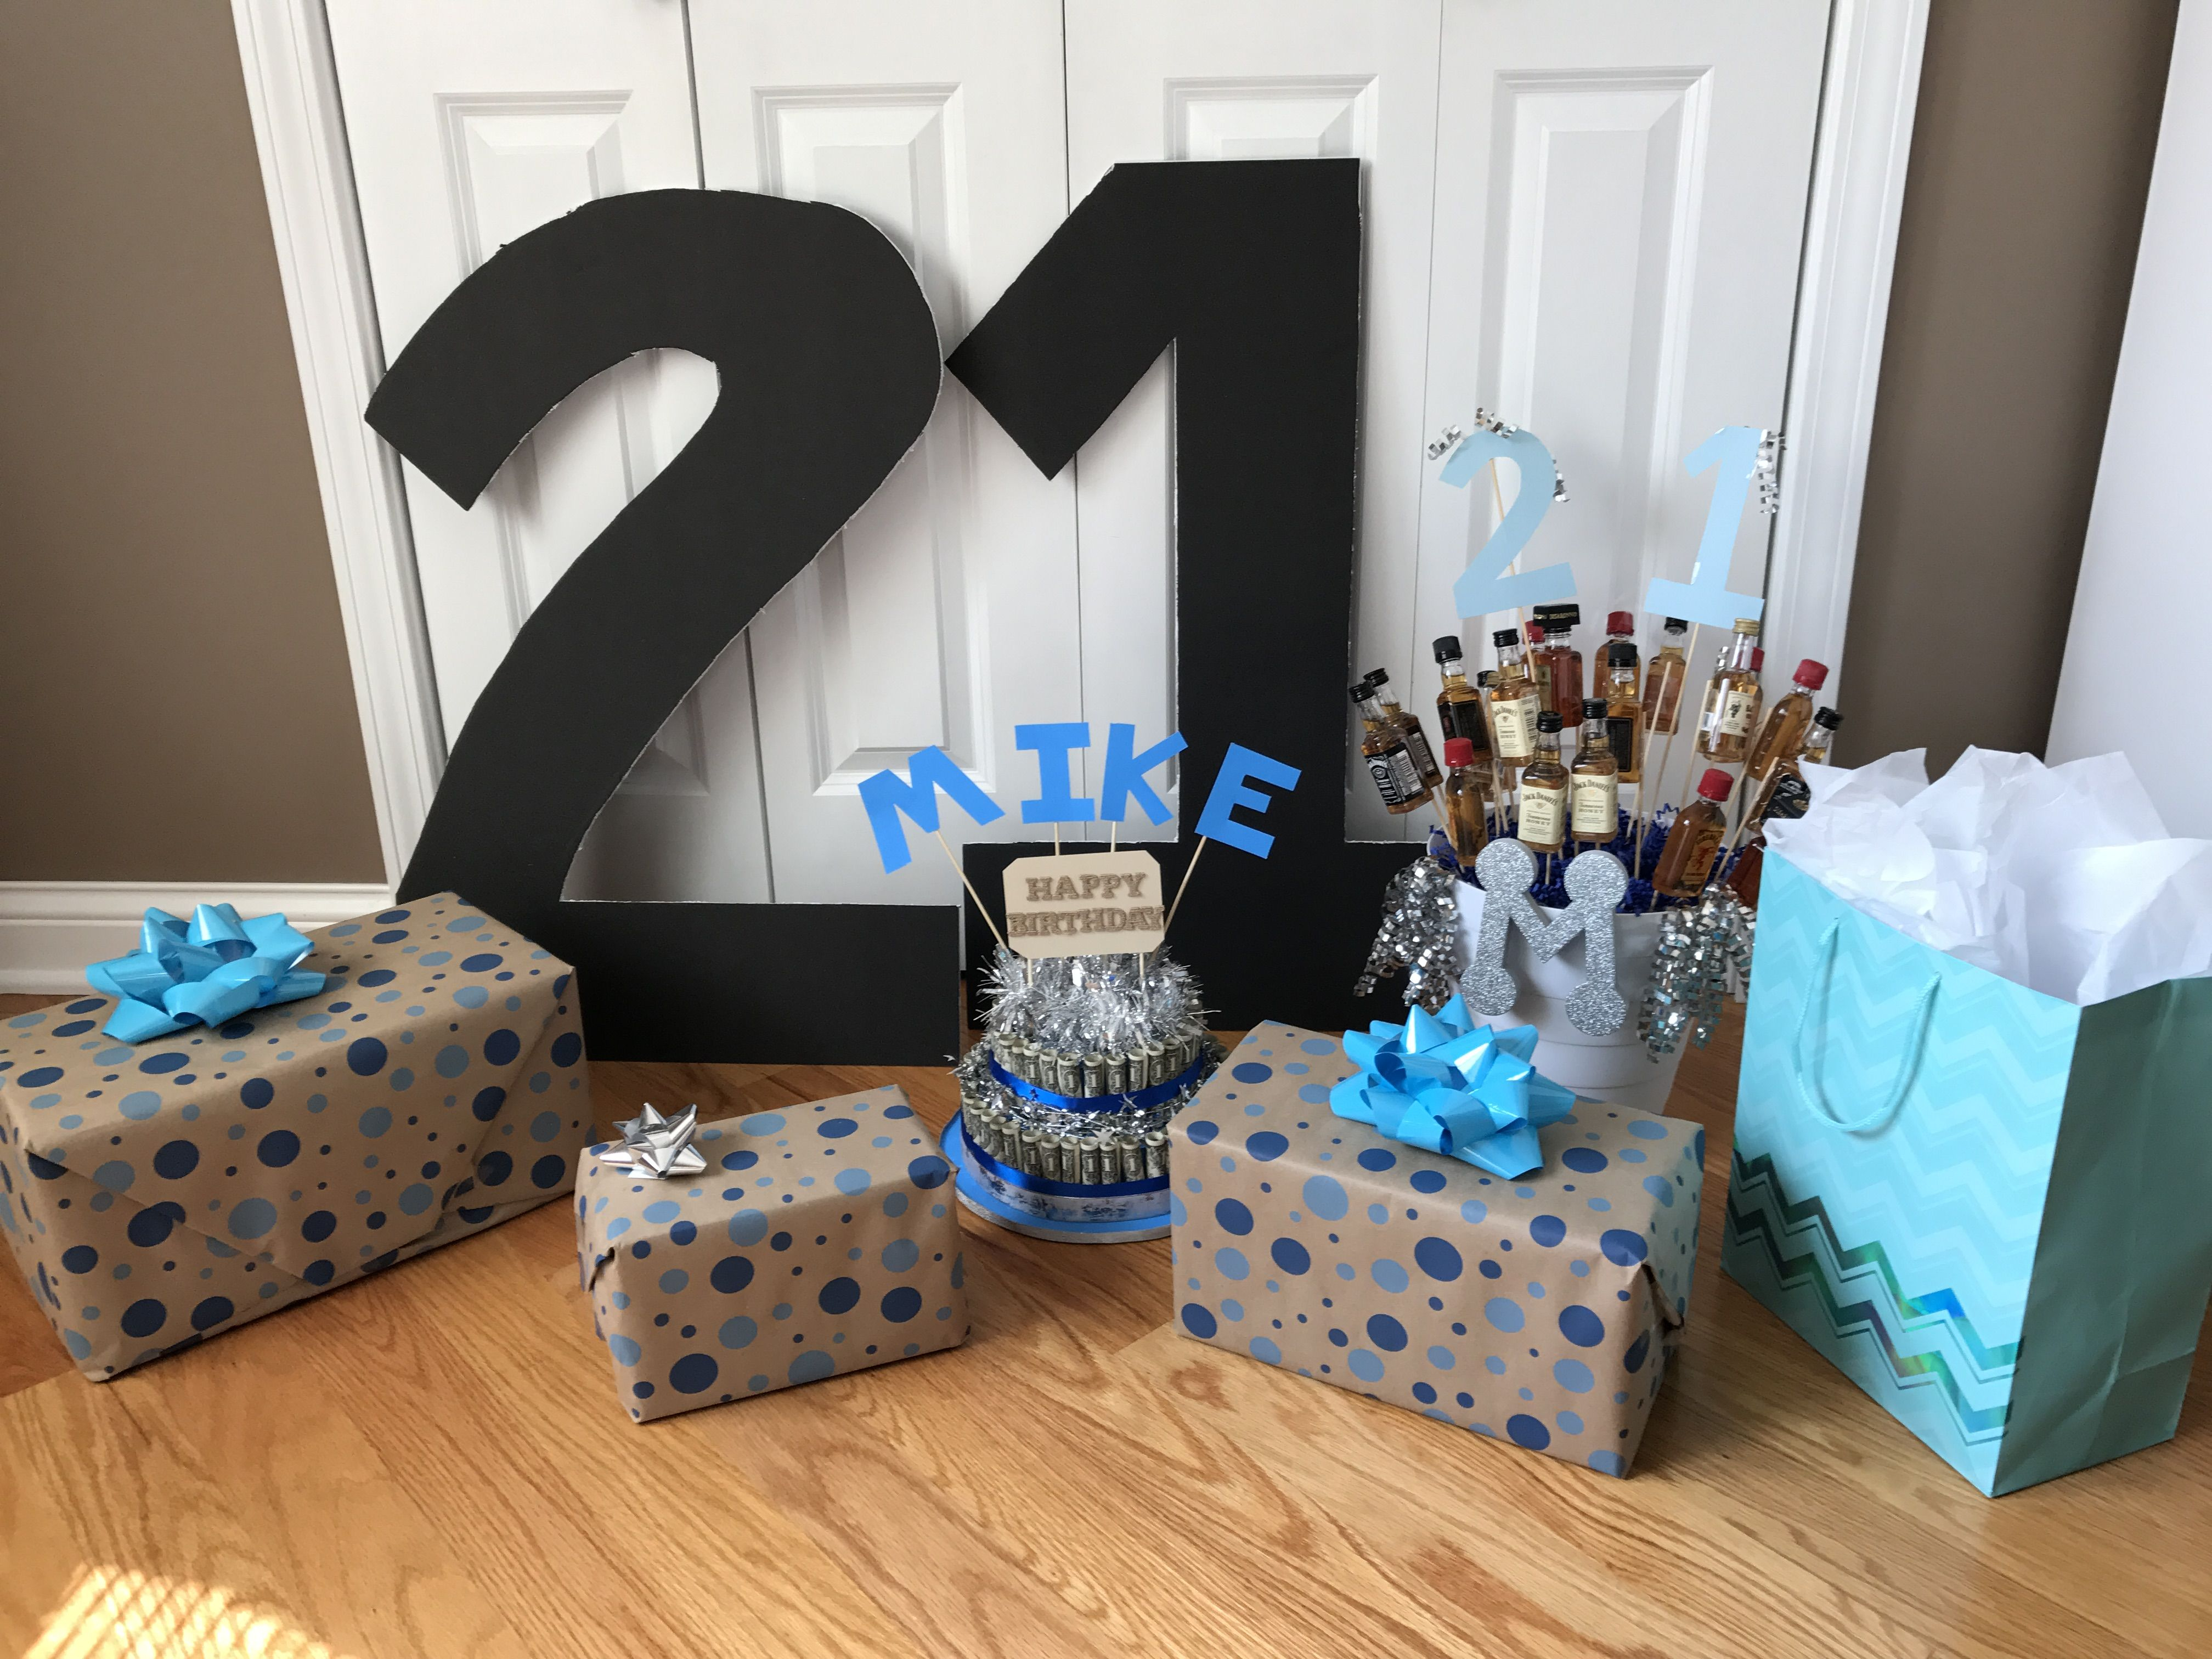 21st Birthday Surprise ideas birthday gifts boyfriend Boyfriend